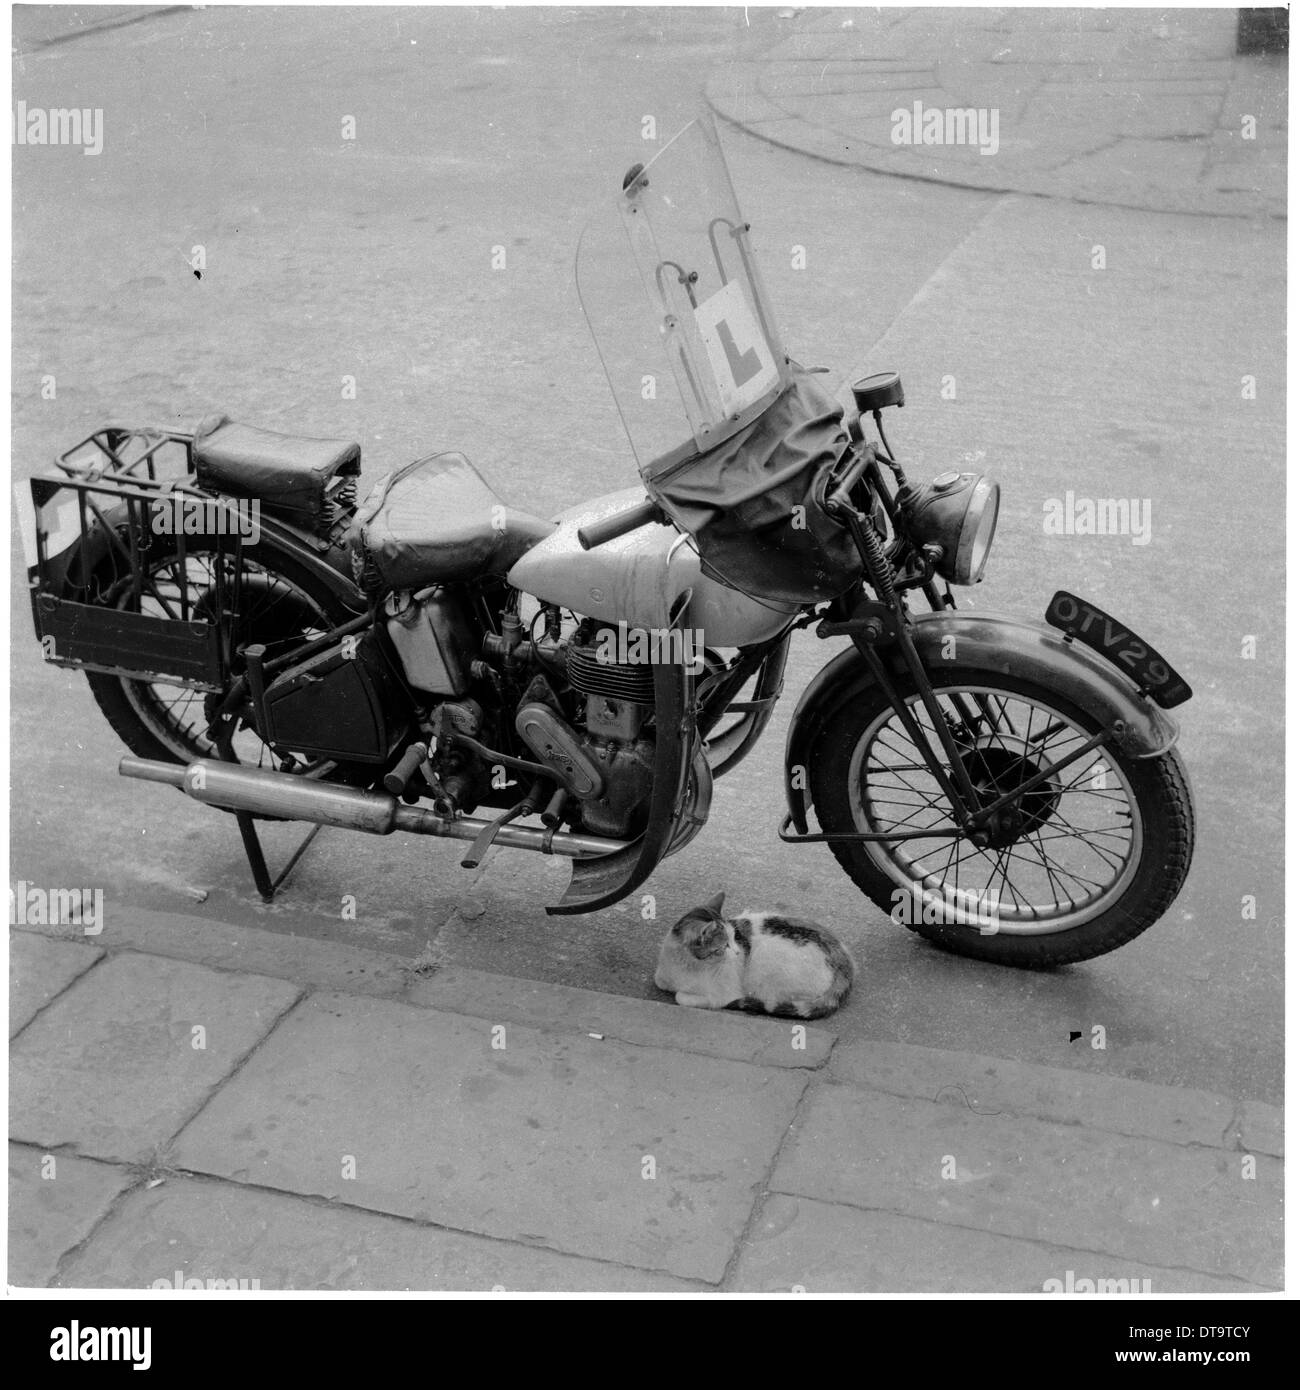 Historical picture from 1950s showing a motor bike parked by a pavement with a small cat underneath it. - Stock Image